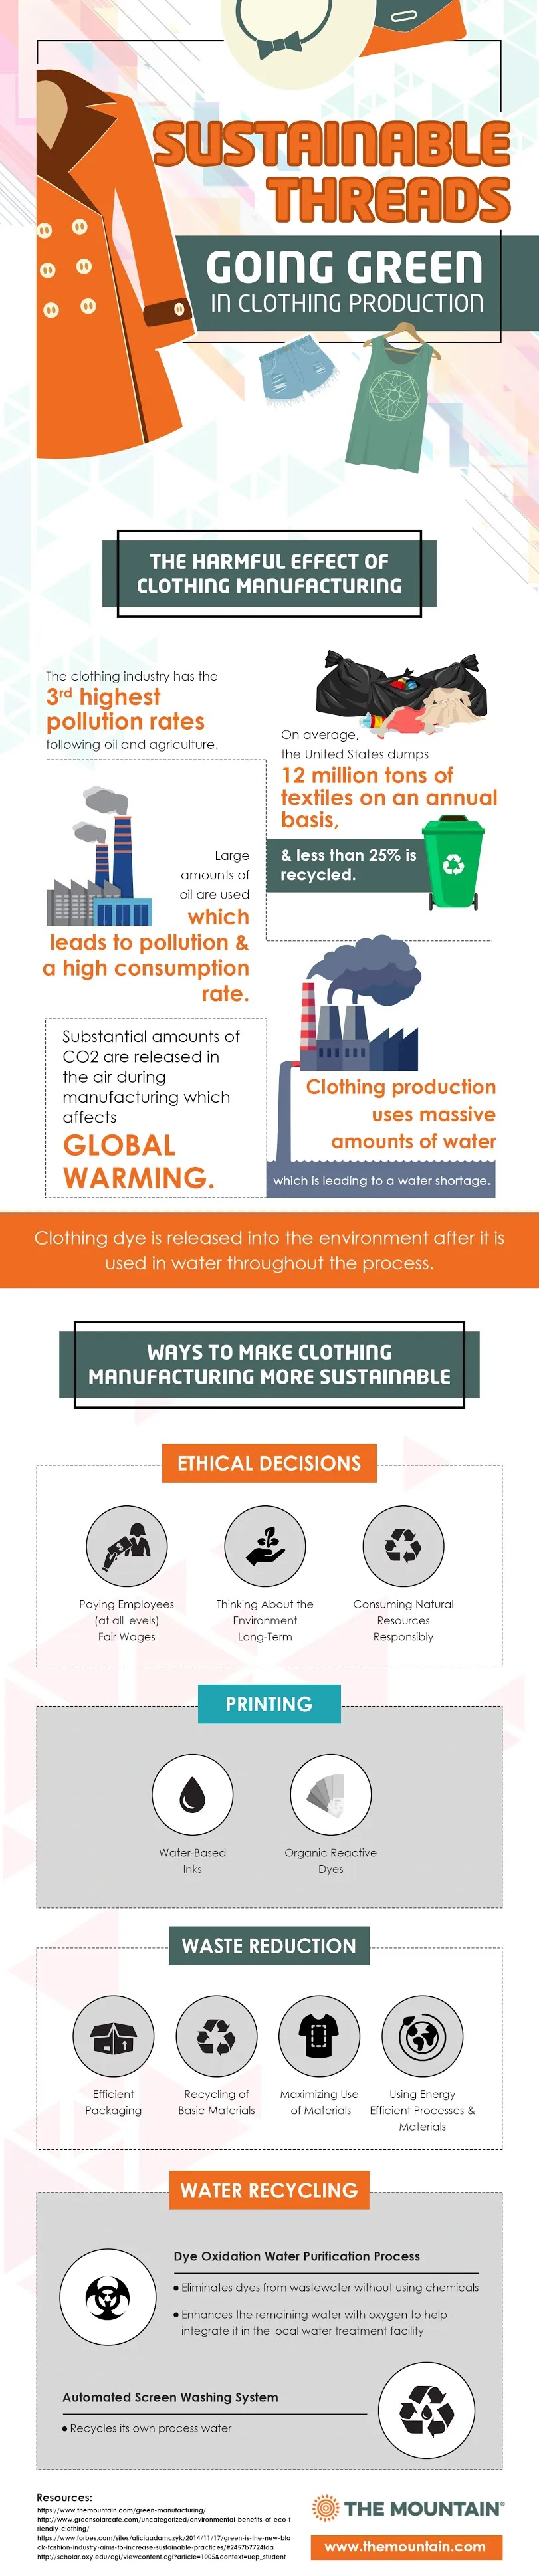 Sustainable Threads: Going Green in Clothing Production #infographic